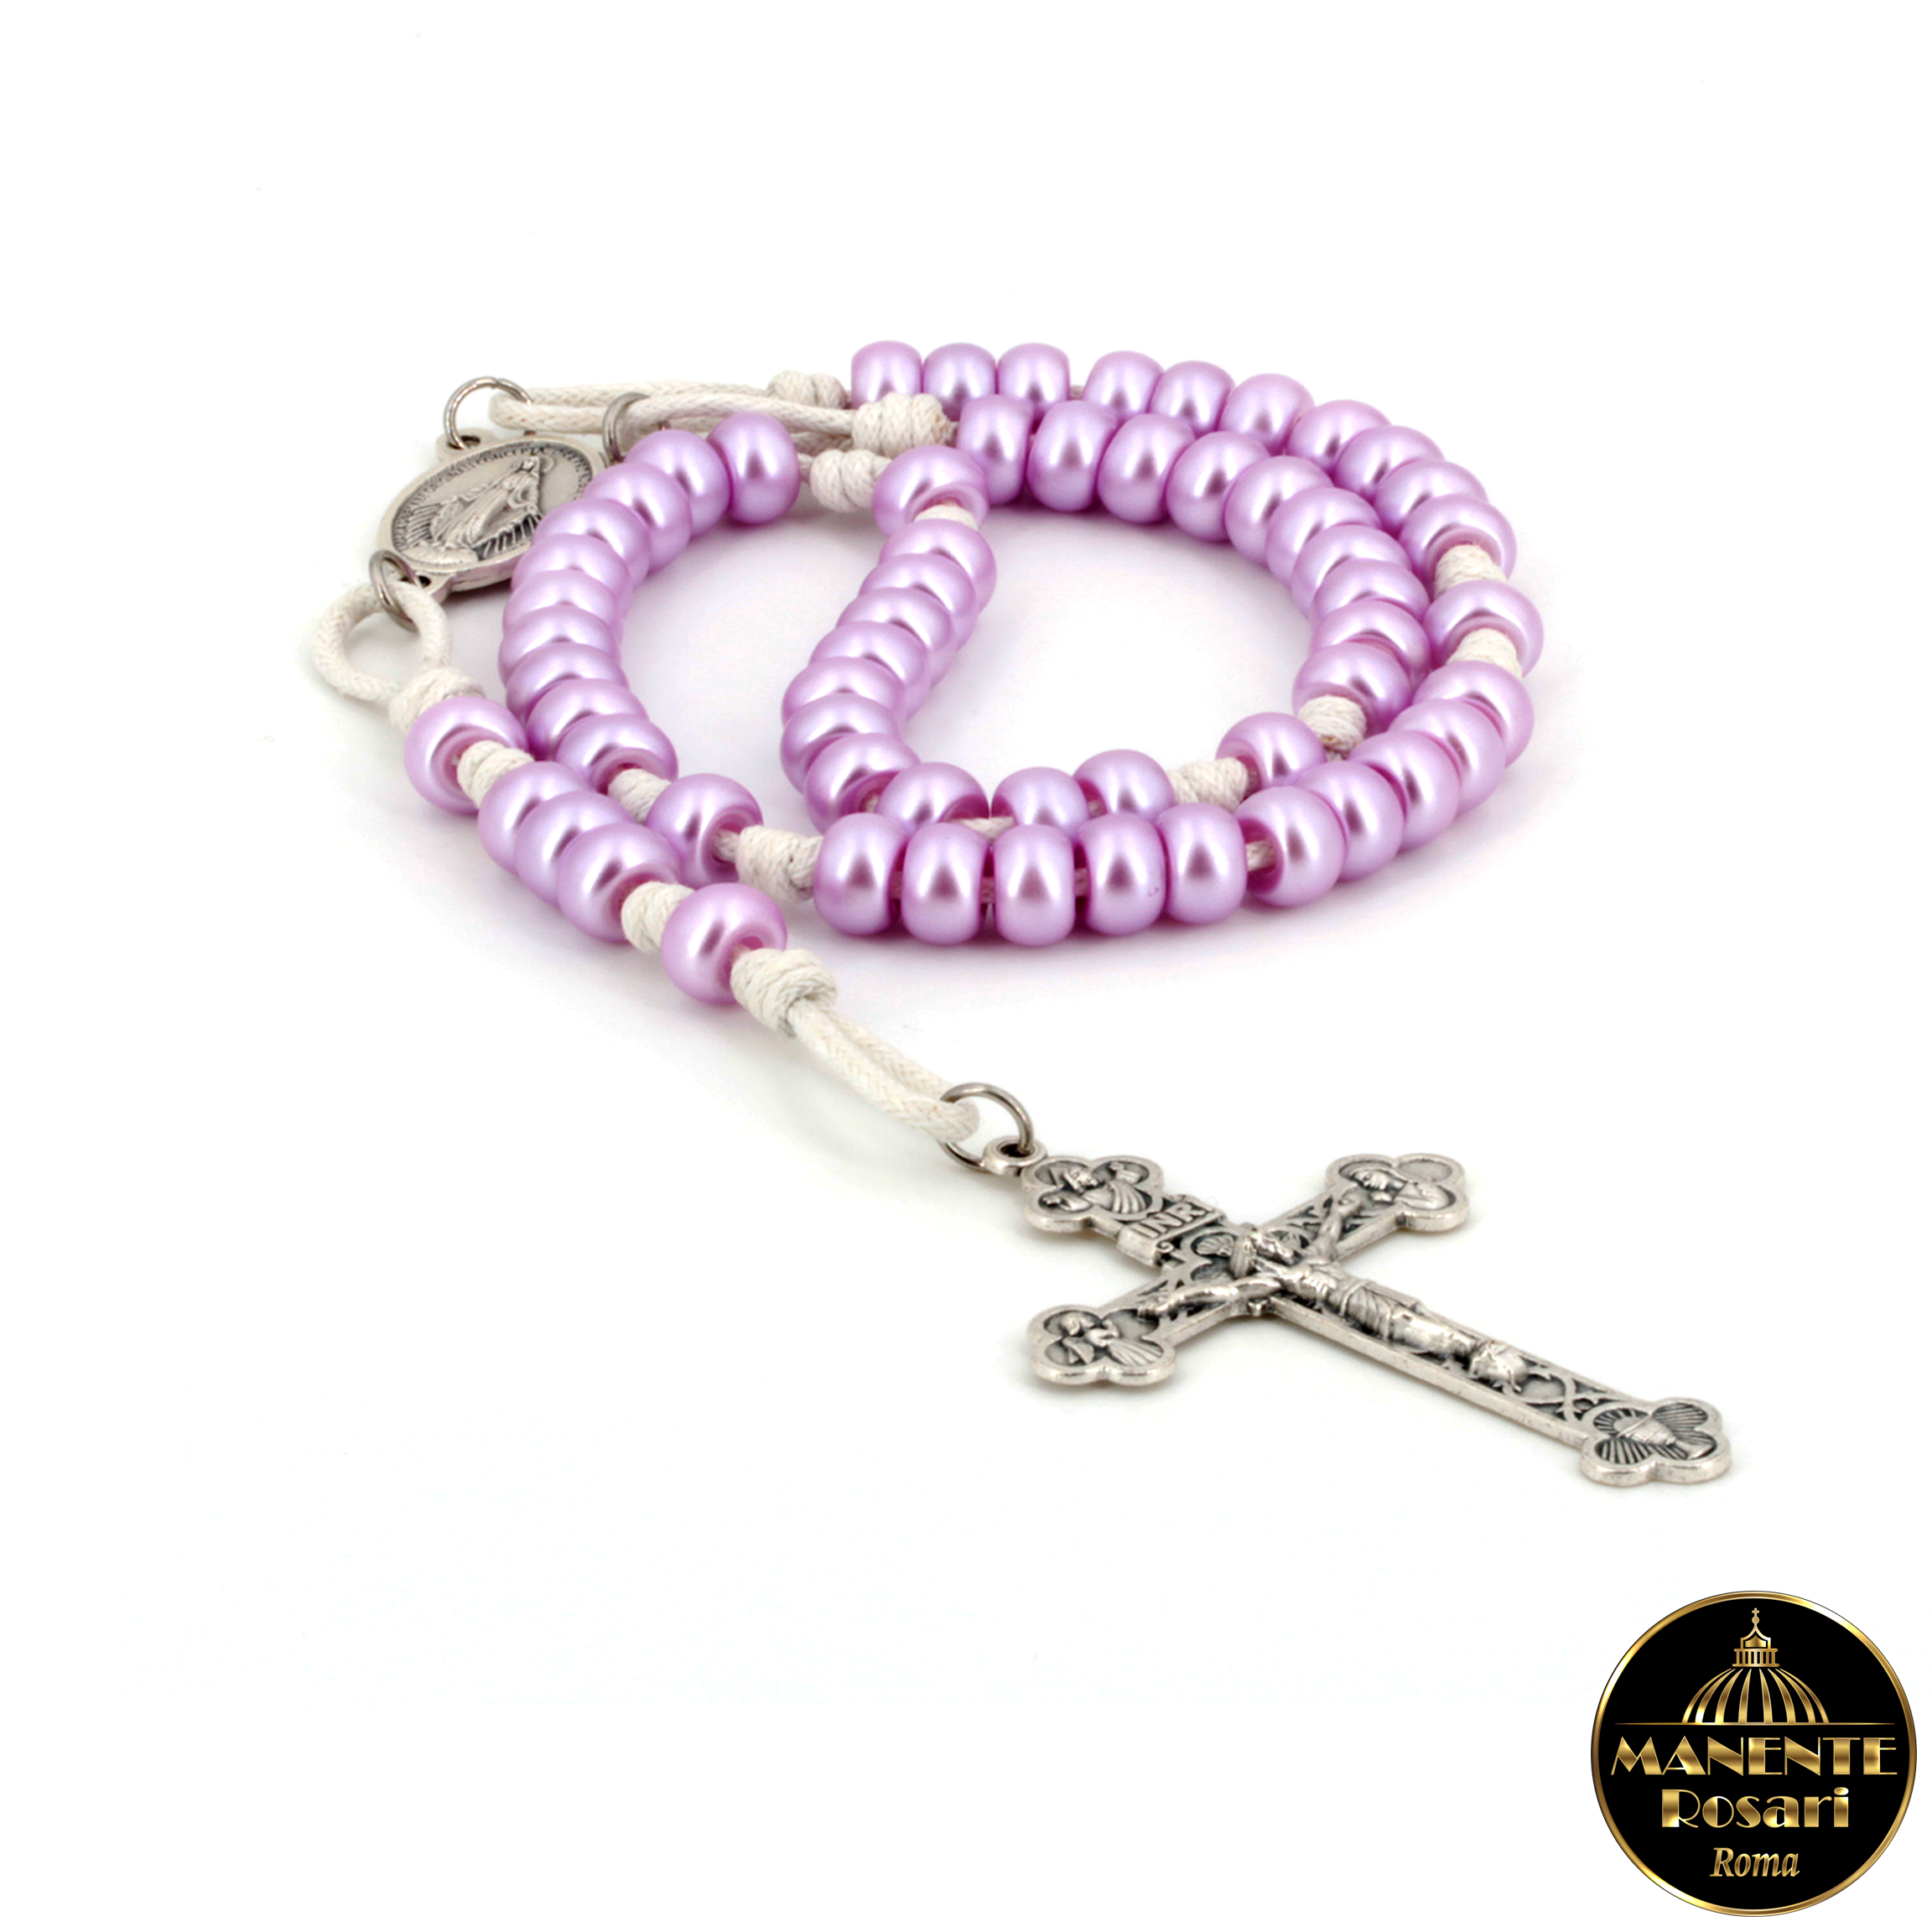 MANENTE Rosaries - Rosaries from Italy